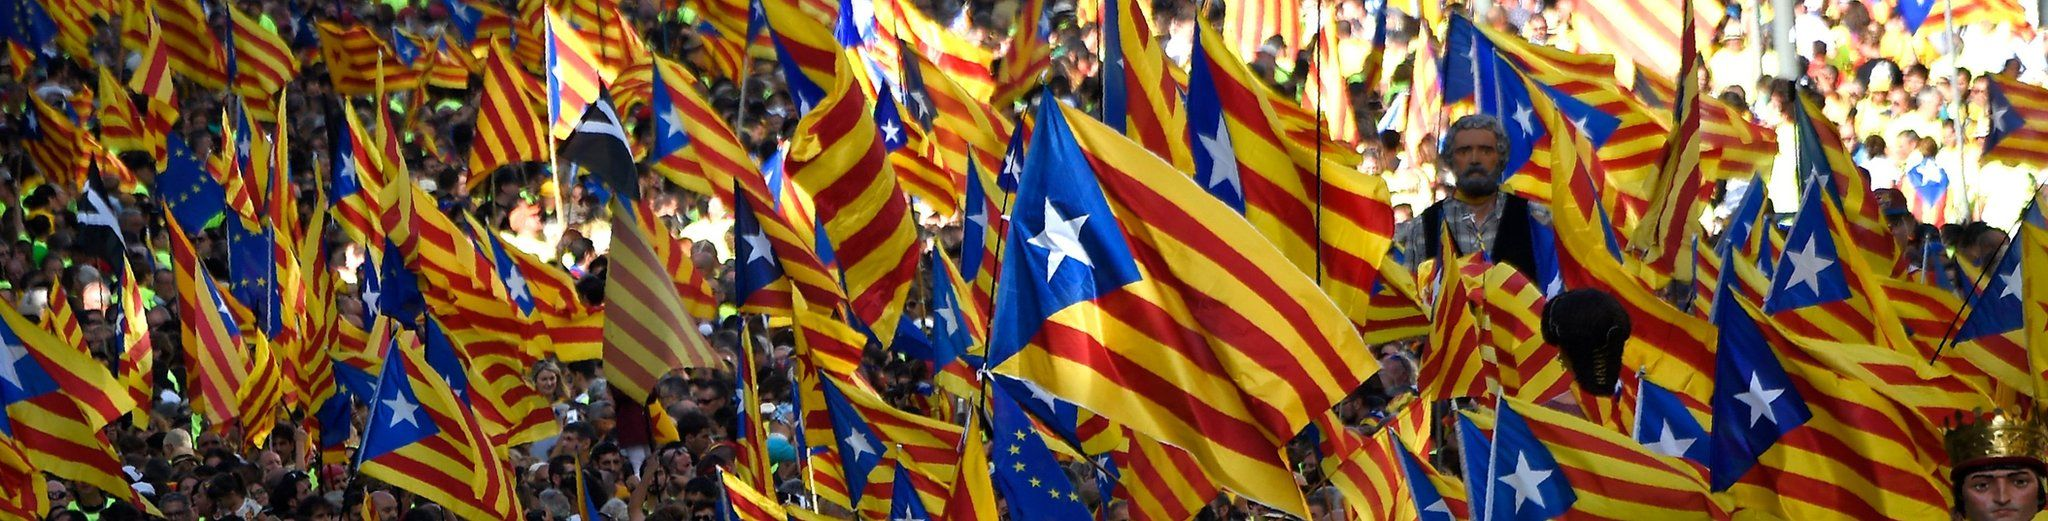 """People wave """"Esteladas"""" (pro-independence Catalan flags) as they gather during a pro-independence demonstration, on September 11, 2017 in Barcelona"""